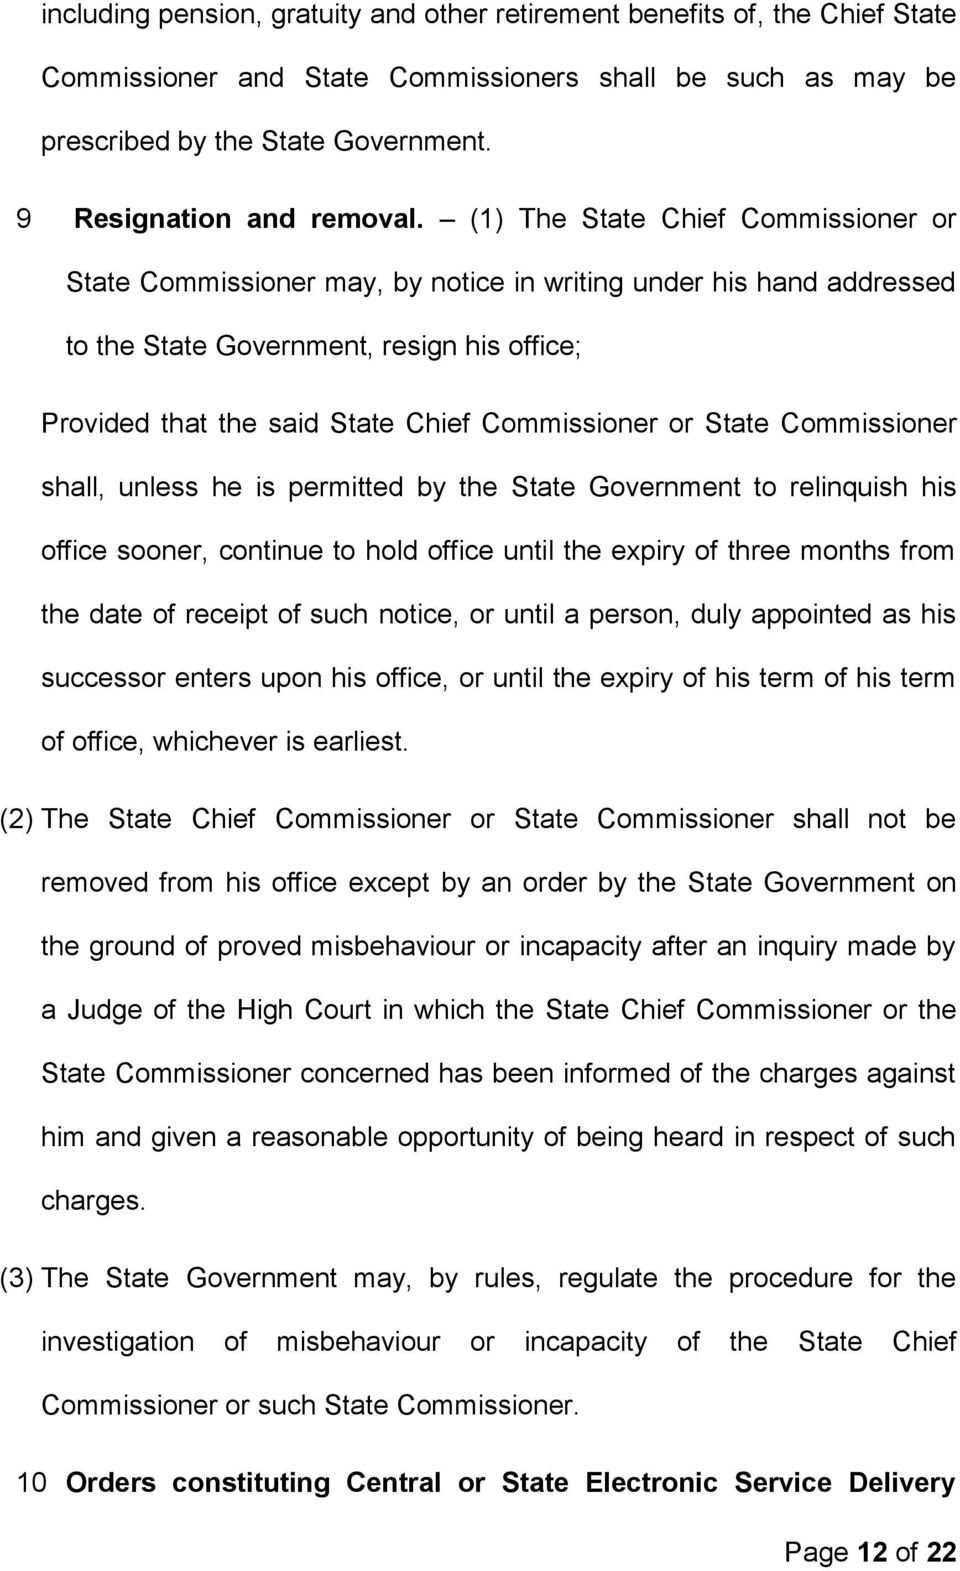 (1) The State Chief Commissioner or State Commissioner may, by notice in writing under his hand addressed to the State Government, resign his office; Provided that the said State Chief Commissioner